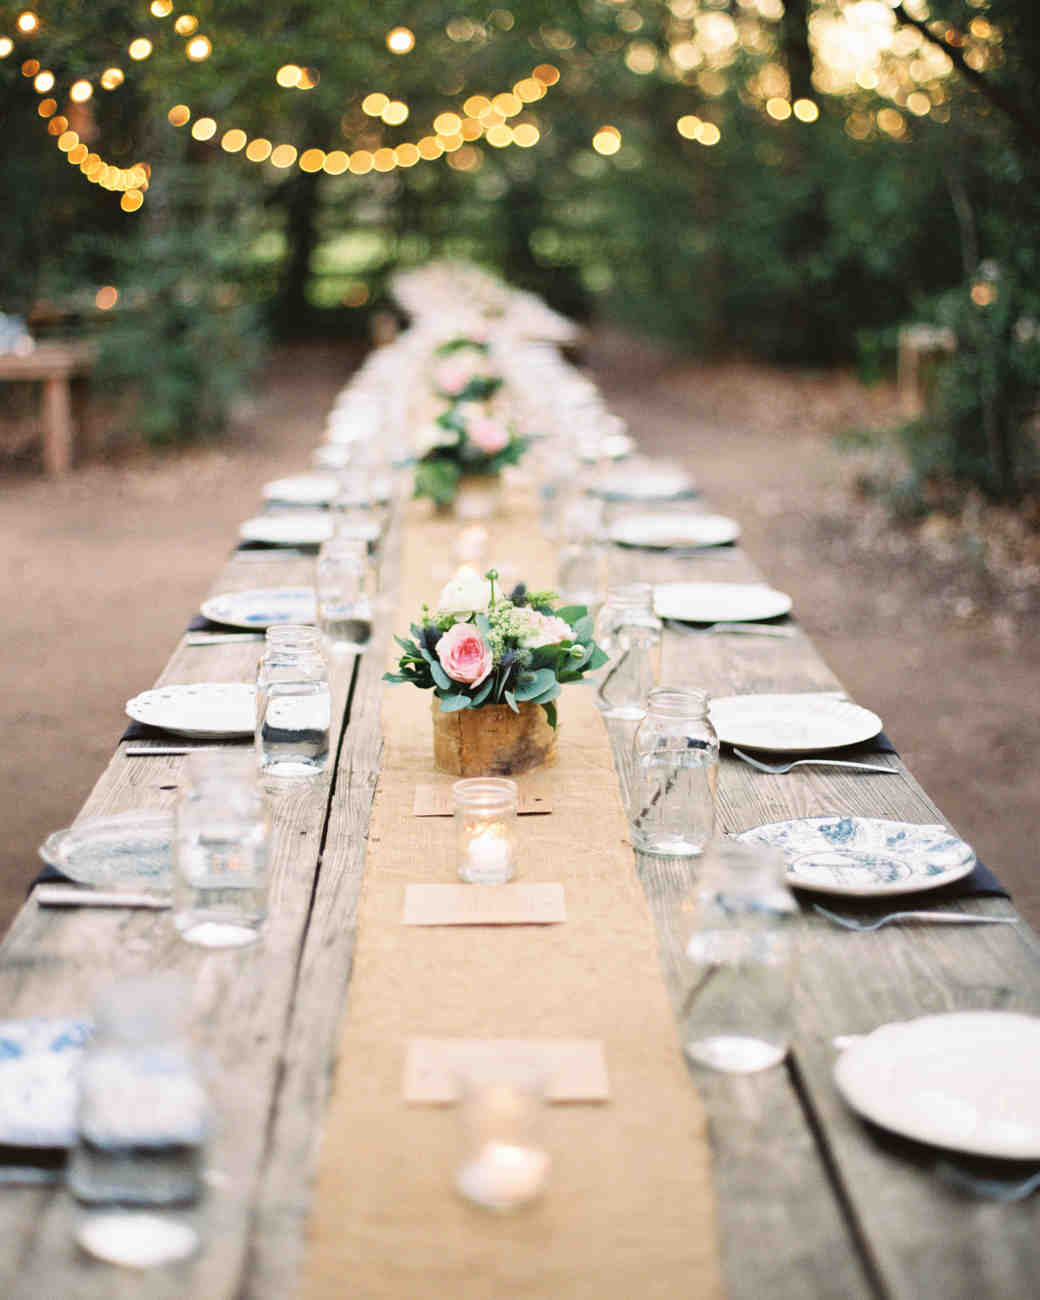 mason jar drinks table setting outdoors